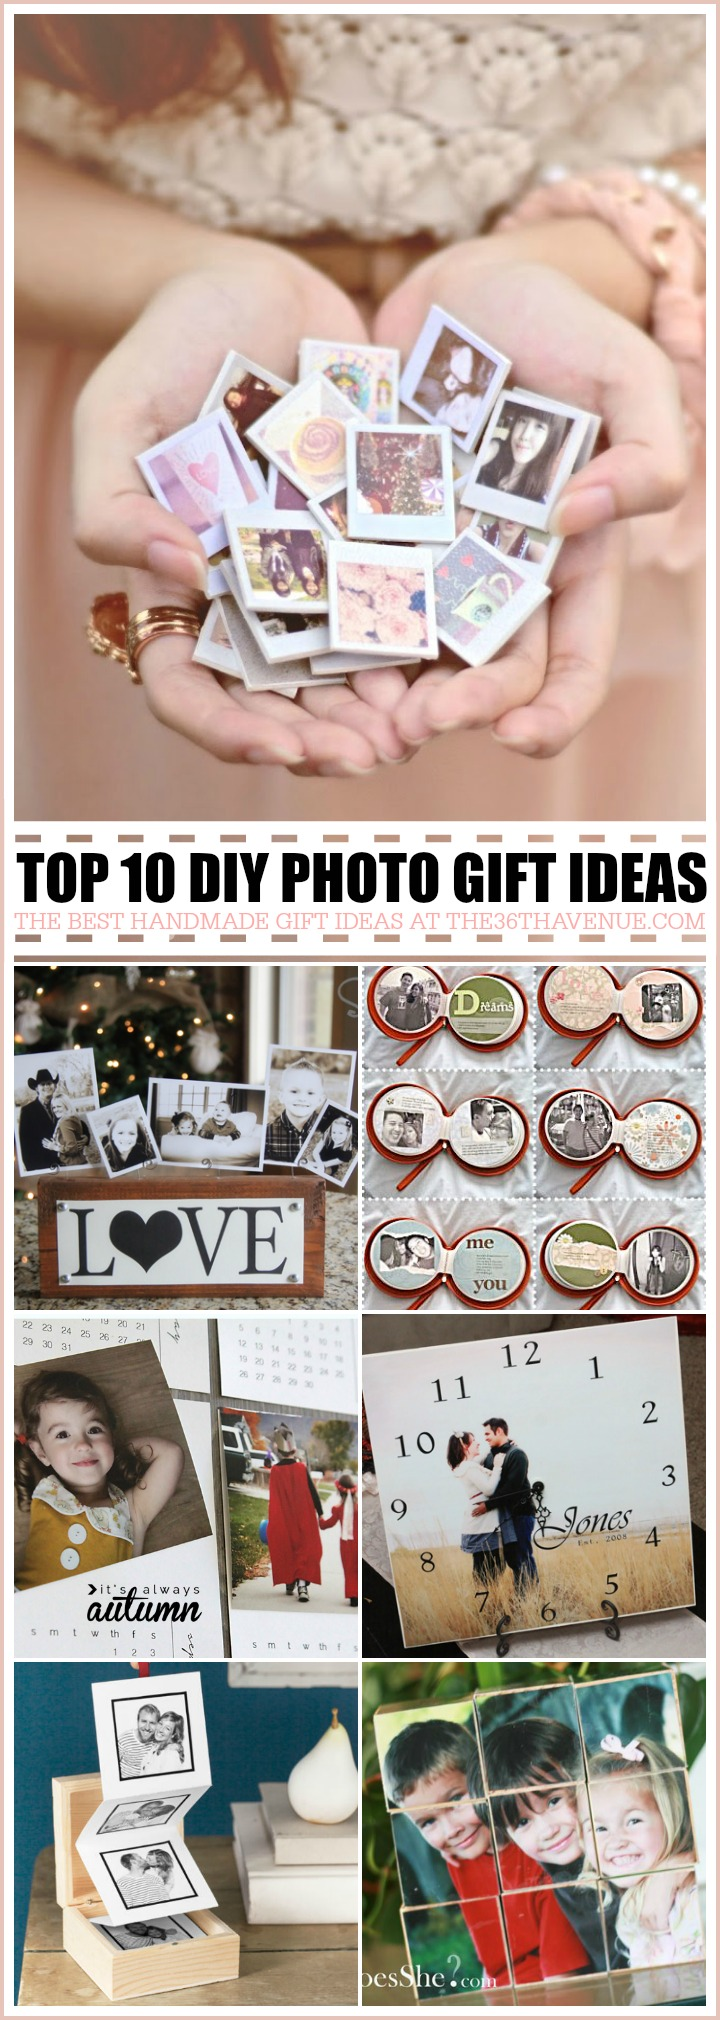 Handmade Gifts Photo Ideas At The36thavenue